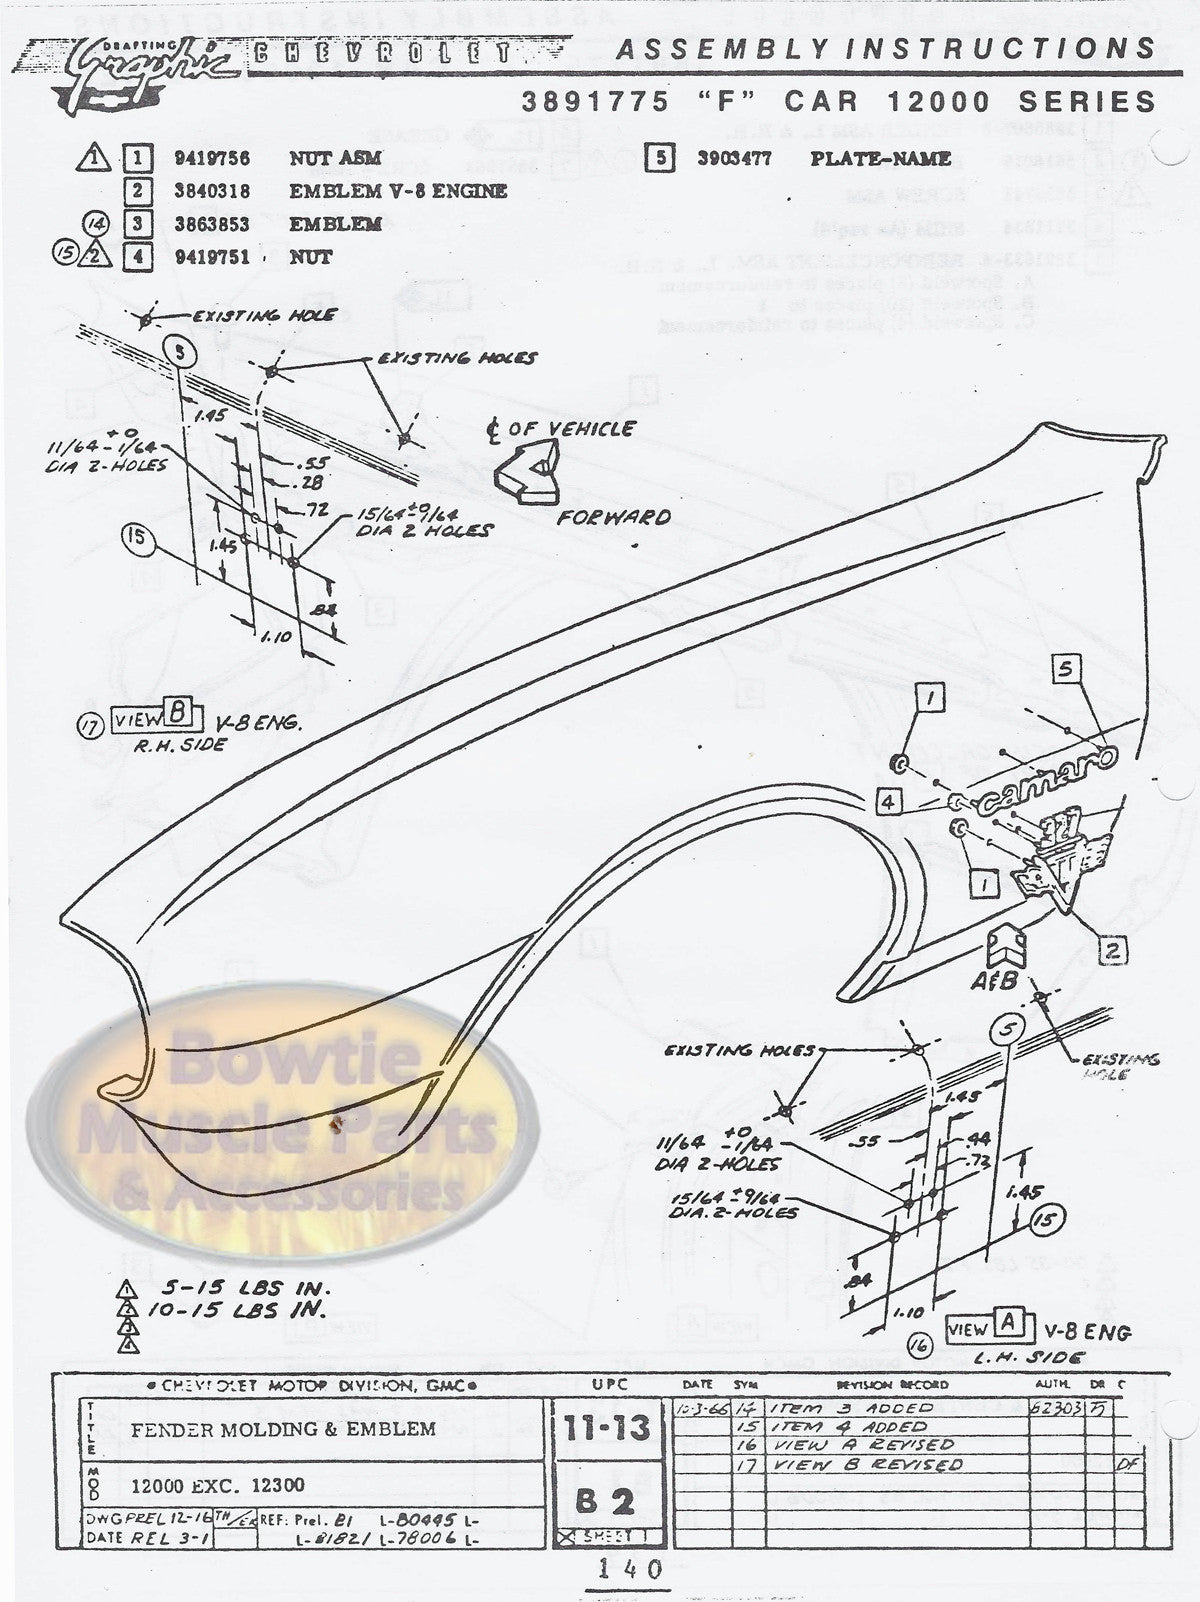 Assymanual C Df D D E Bdb Ef on 1969 Camaro Power Steering Hose